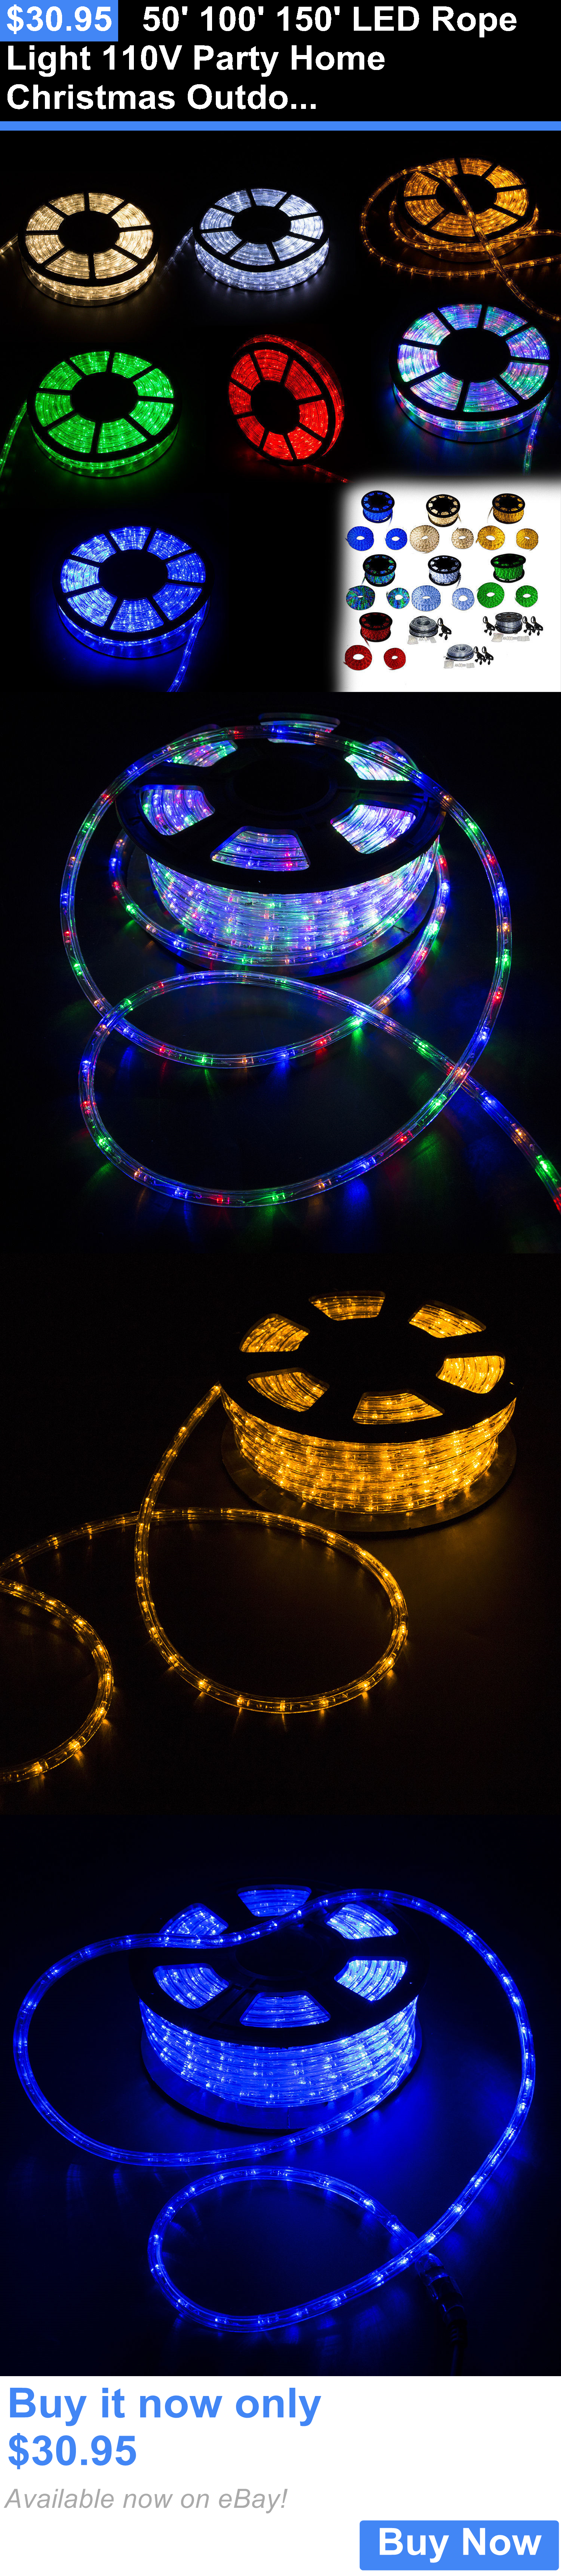 Lamps And Lighting 50 100 150 Led Rope Light 110V Party Home